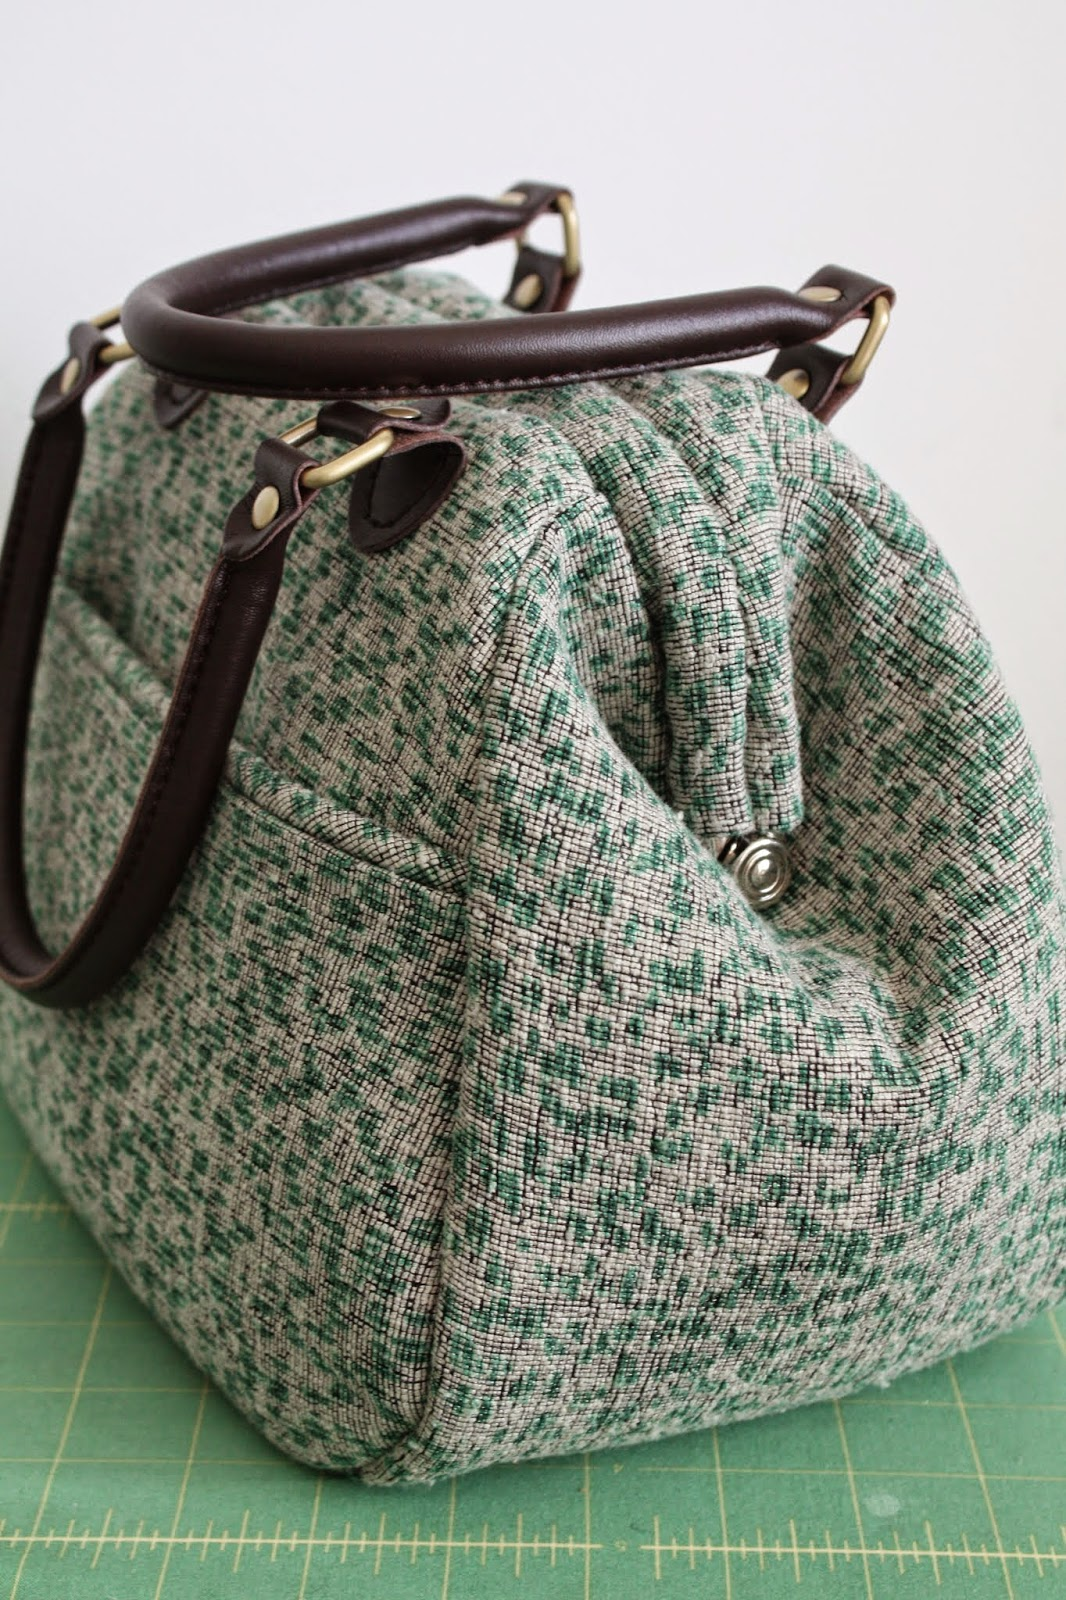 Nicole at Home: Companion Carpet Bag in silk brocade